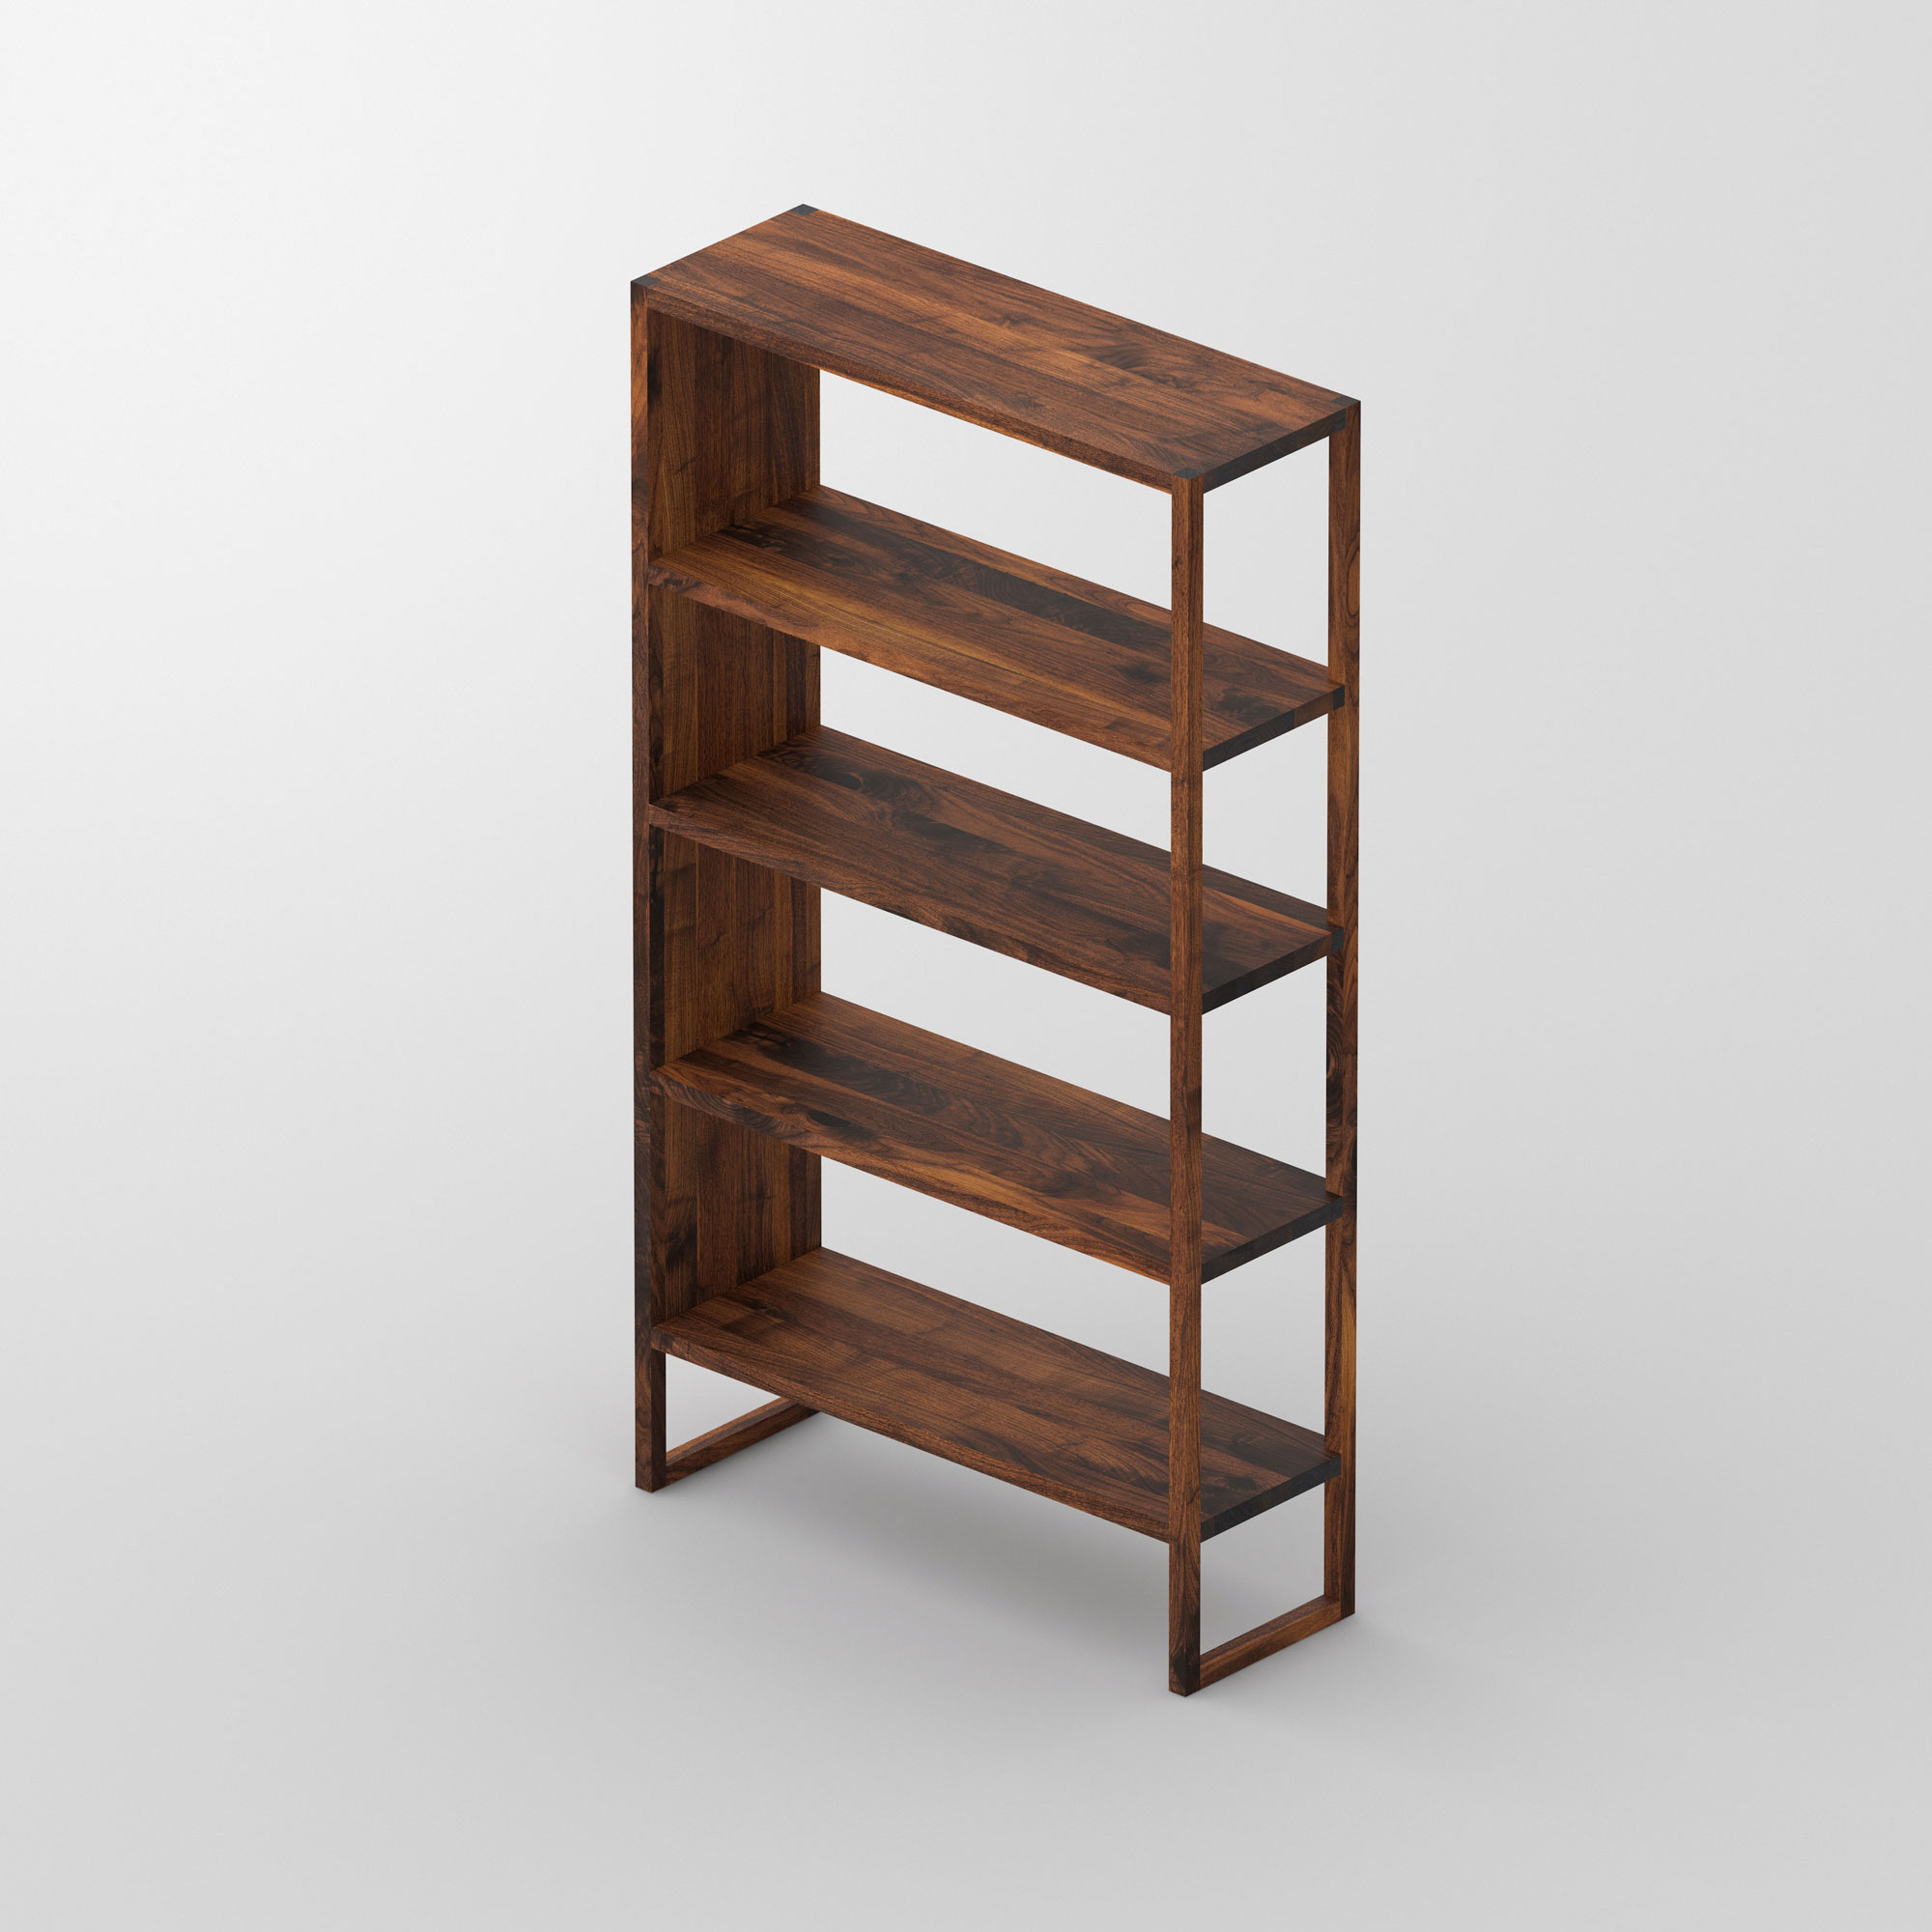 Linoleum Wood Shelf SENA cam3 custom made in solid wood by vitamin design